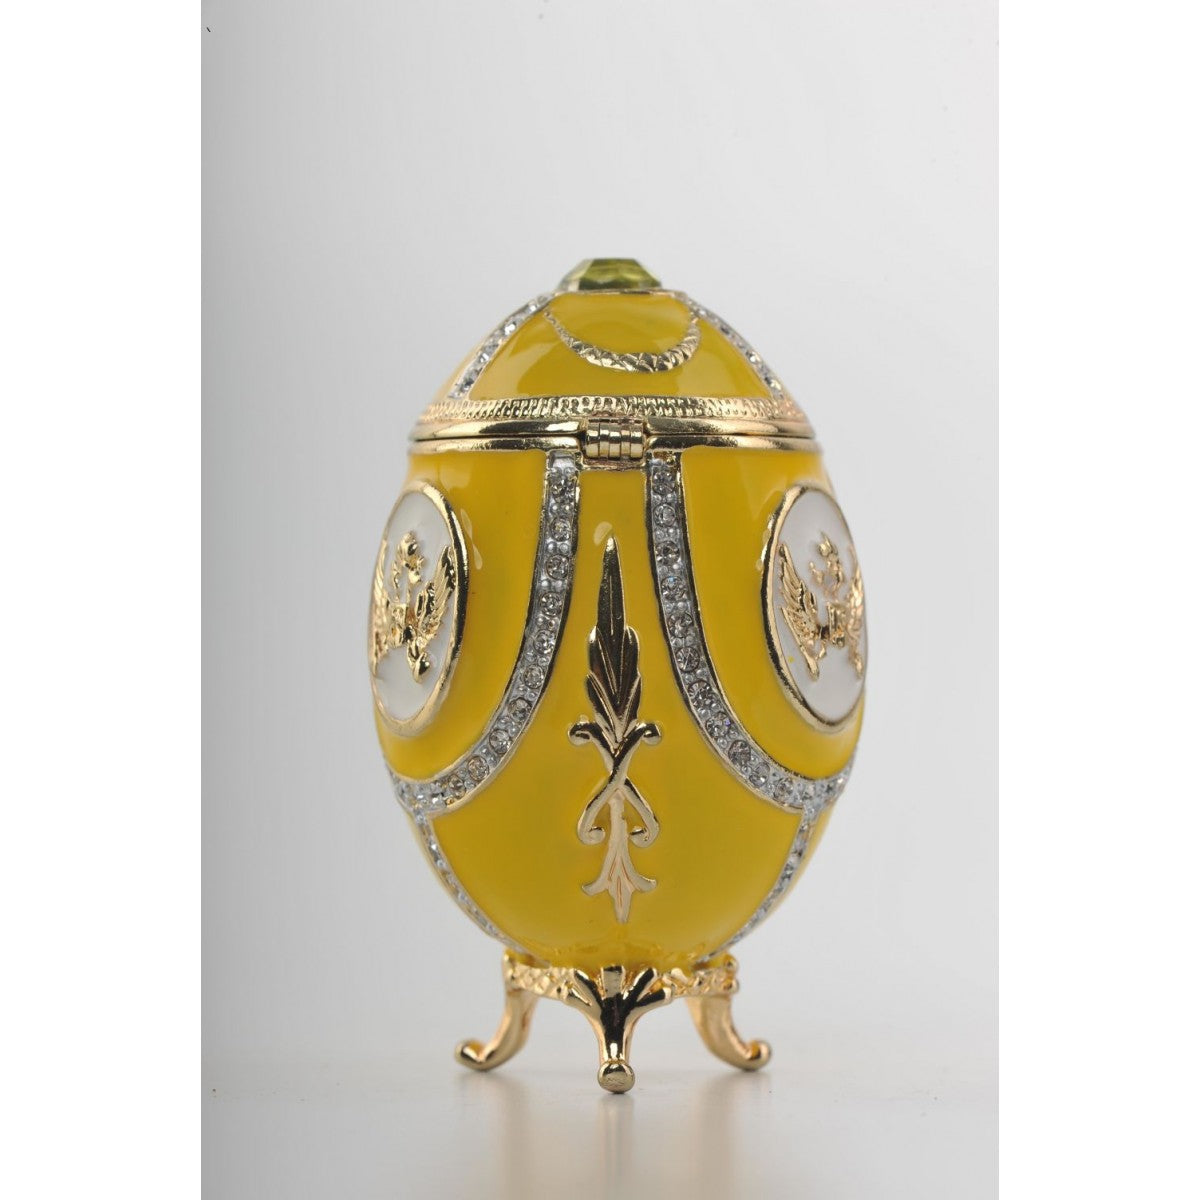 Yellow Faberge Egg with Gold Decorations by Keren Kopal